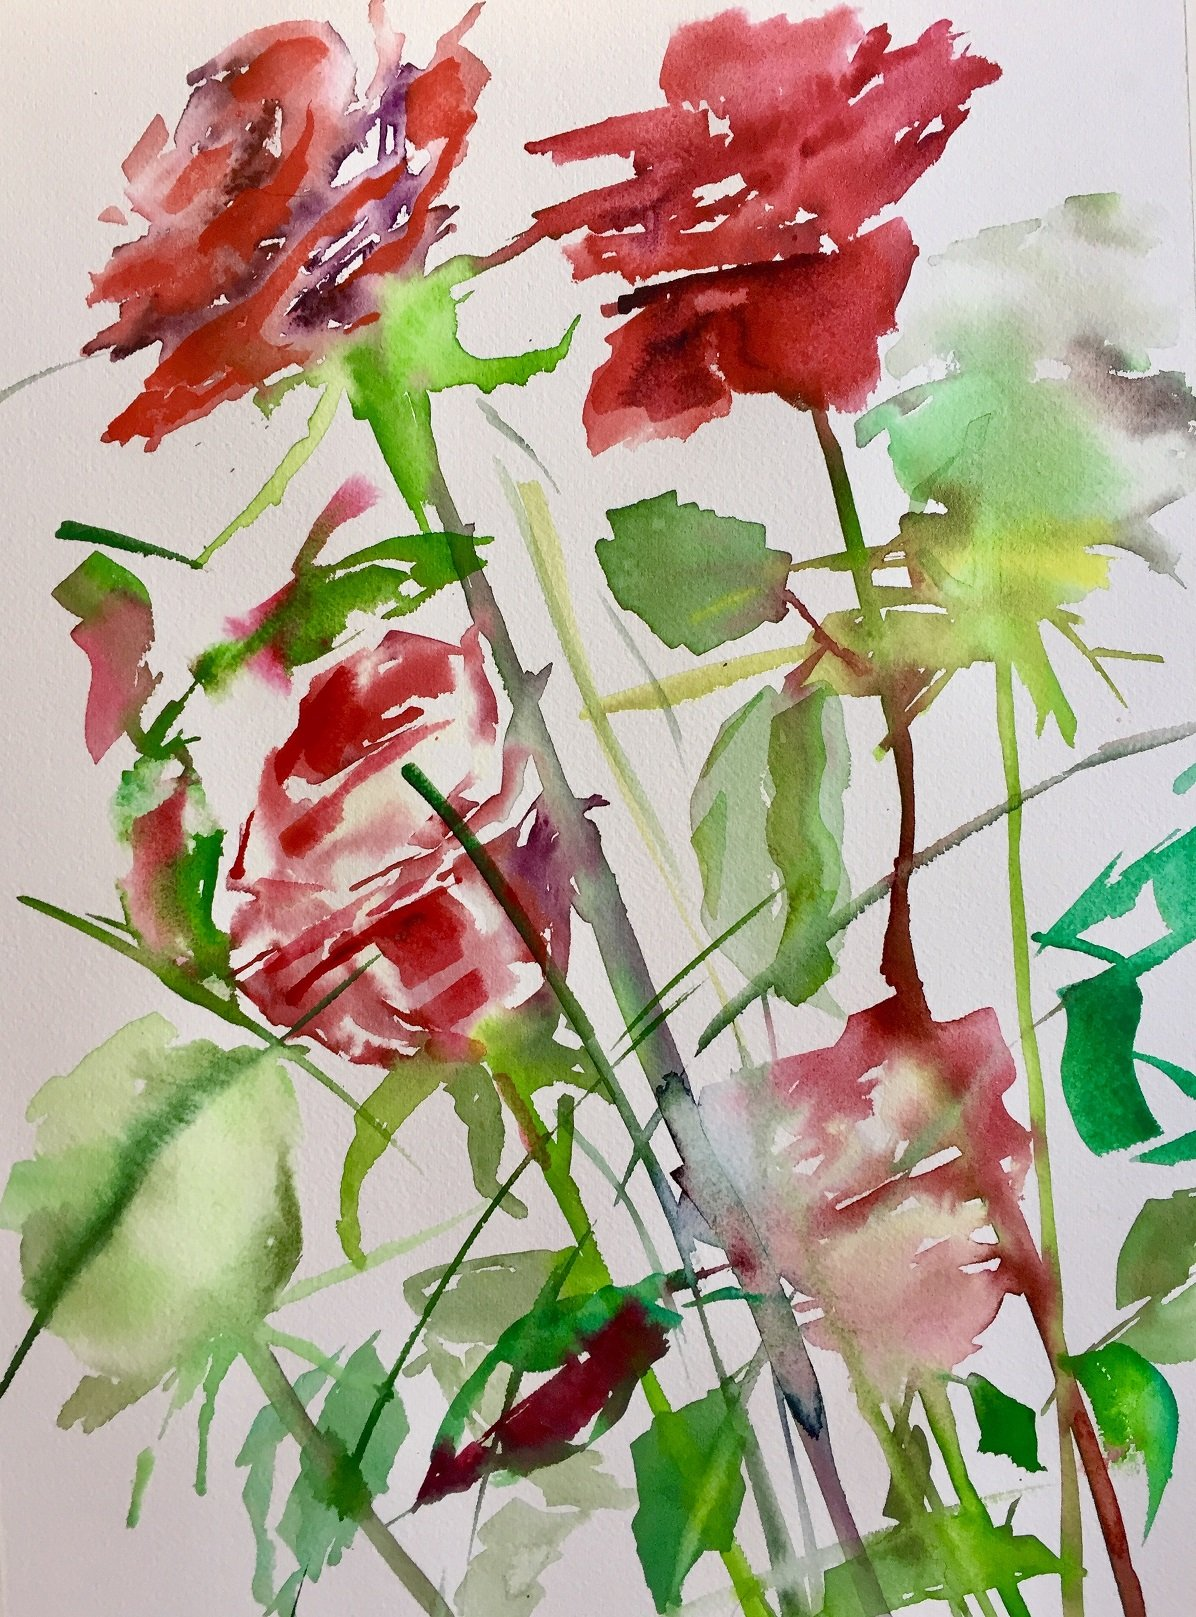 Winter Roses 9<br /> Water colour on cm 300 gms Arches<br /> 56 cm x 31cm